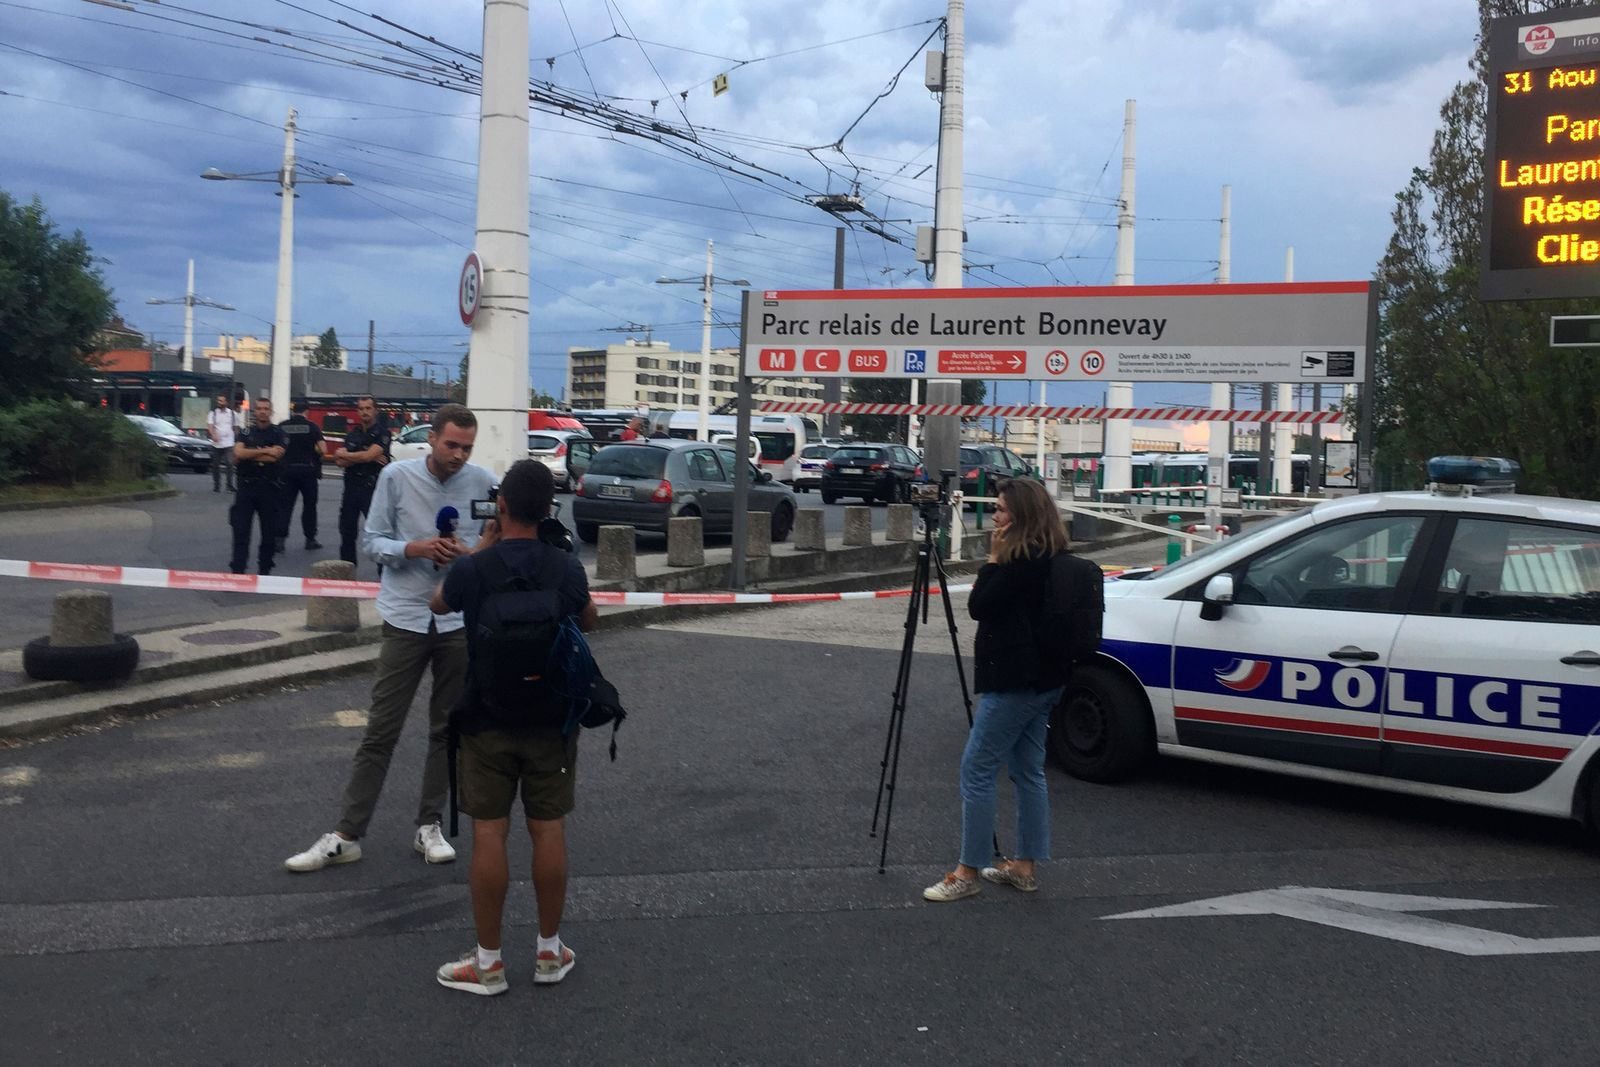 Reporters work near a subway station after an assailant stabbed one person to death and injured nine others, Saturday Aug.31, 2019 just outside a subway station in Villeurbanne, outside Lyon, central France. The reason for the attack is unclear. (AP Photo/Nicolas Vaux-Montagny)